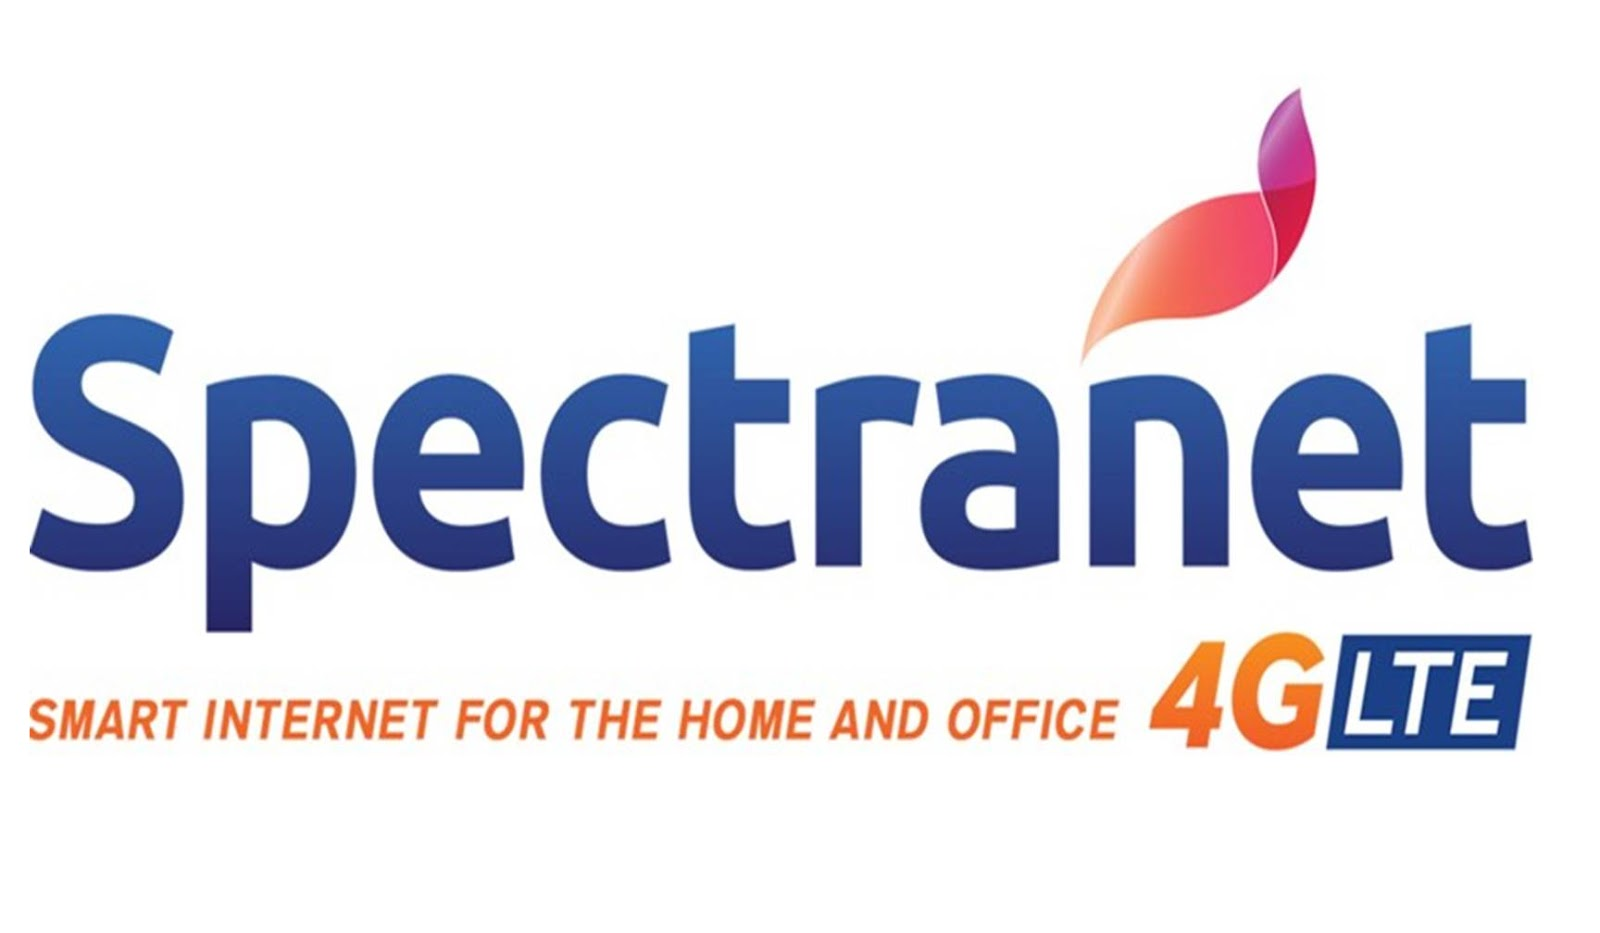 Spectranet Partners with Nokia for expansion of its 1 Gbps broadband services